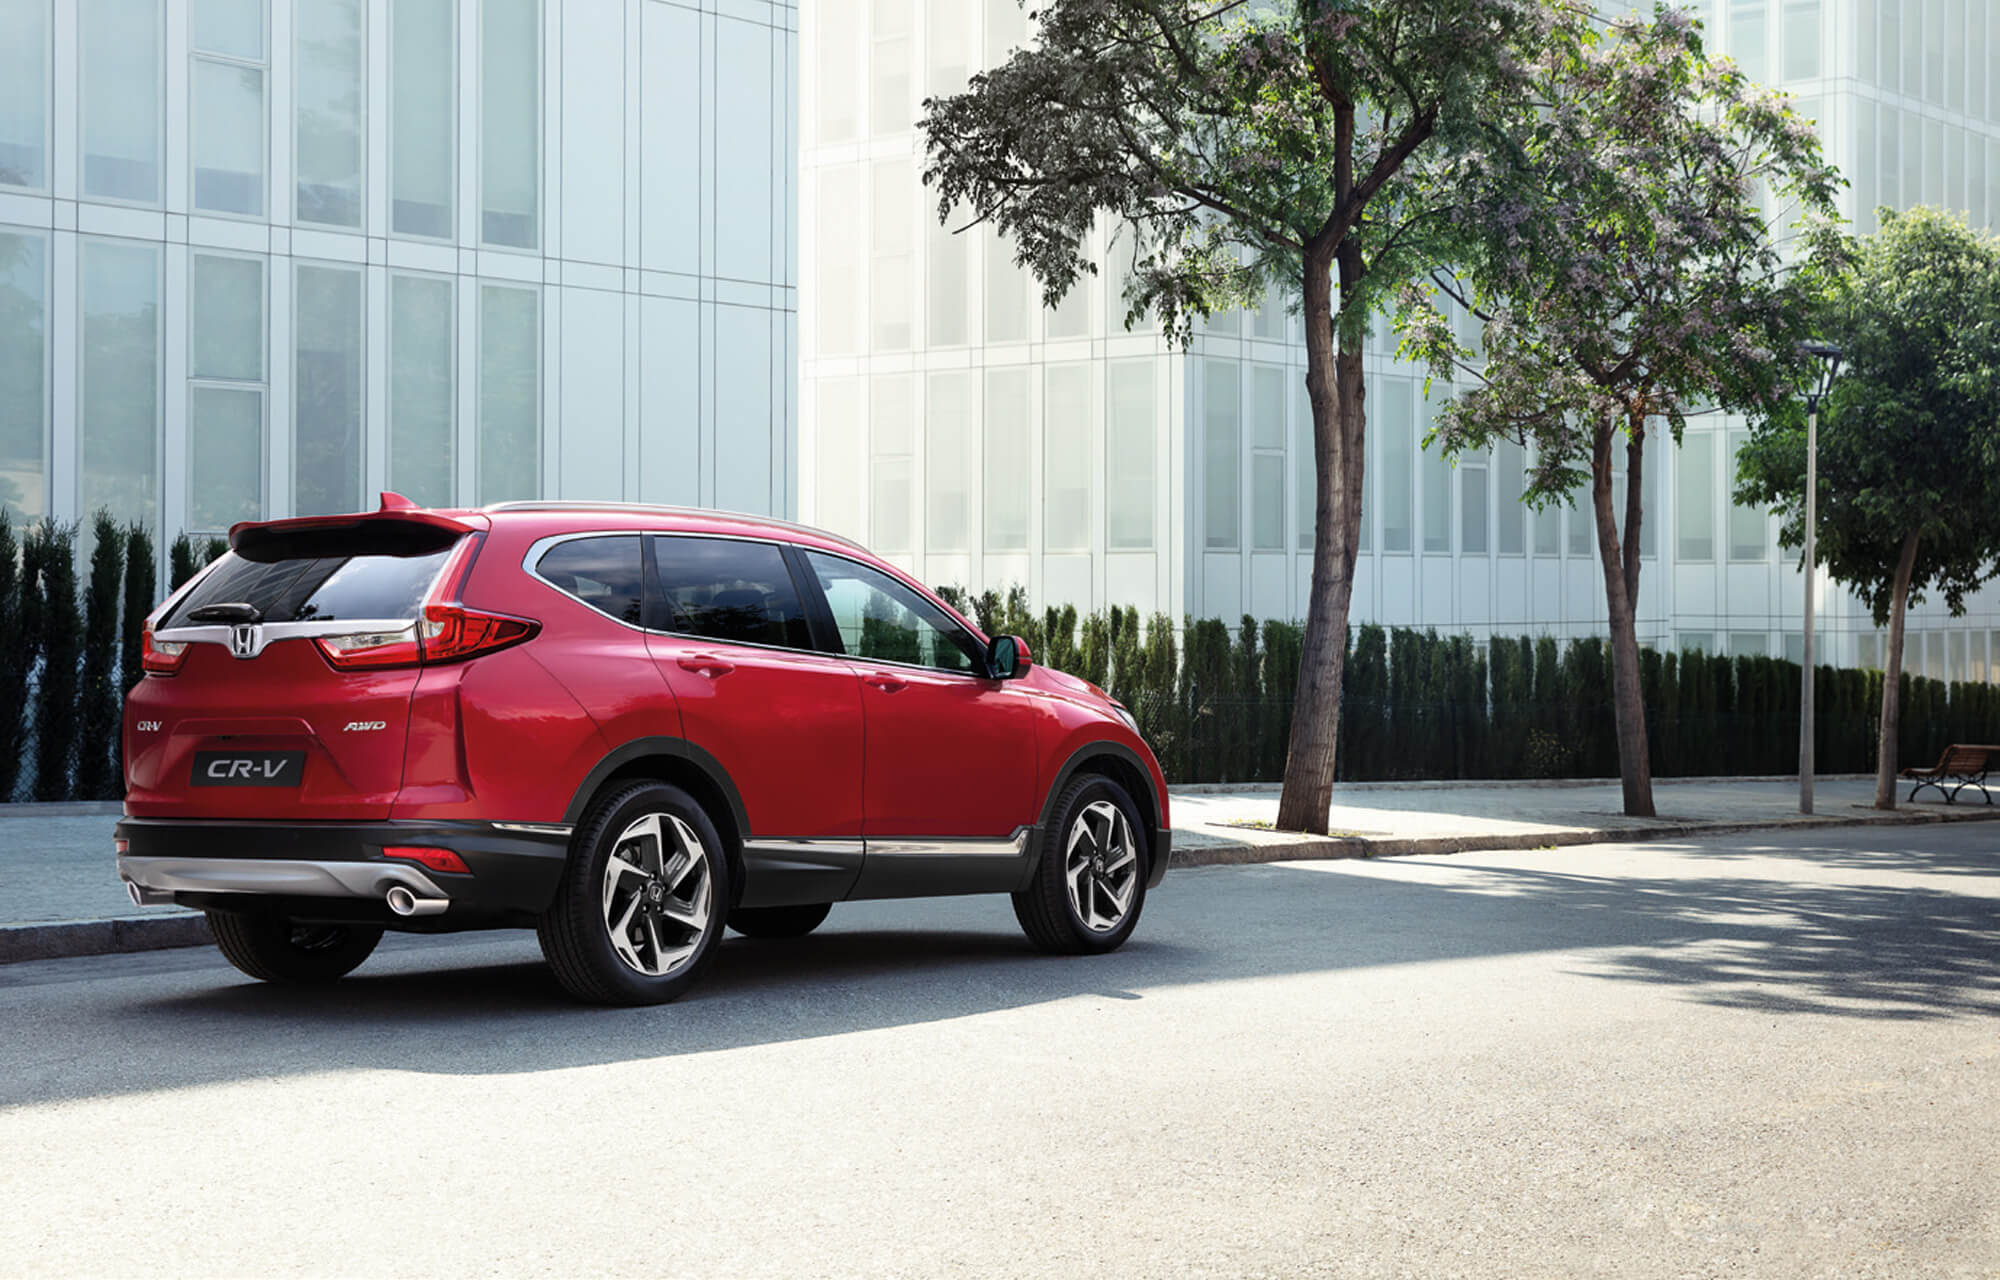 182 CR-V from €311.91 per month